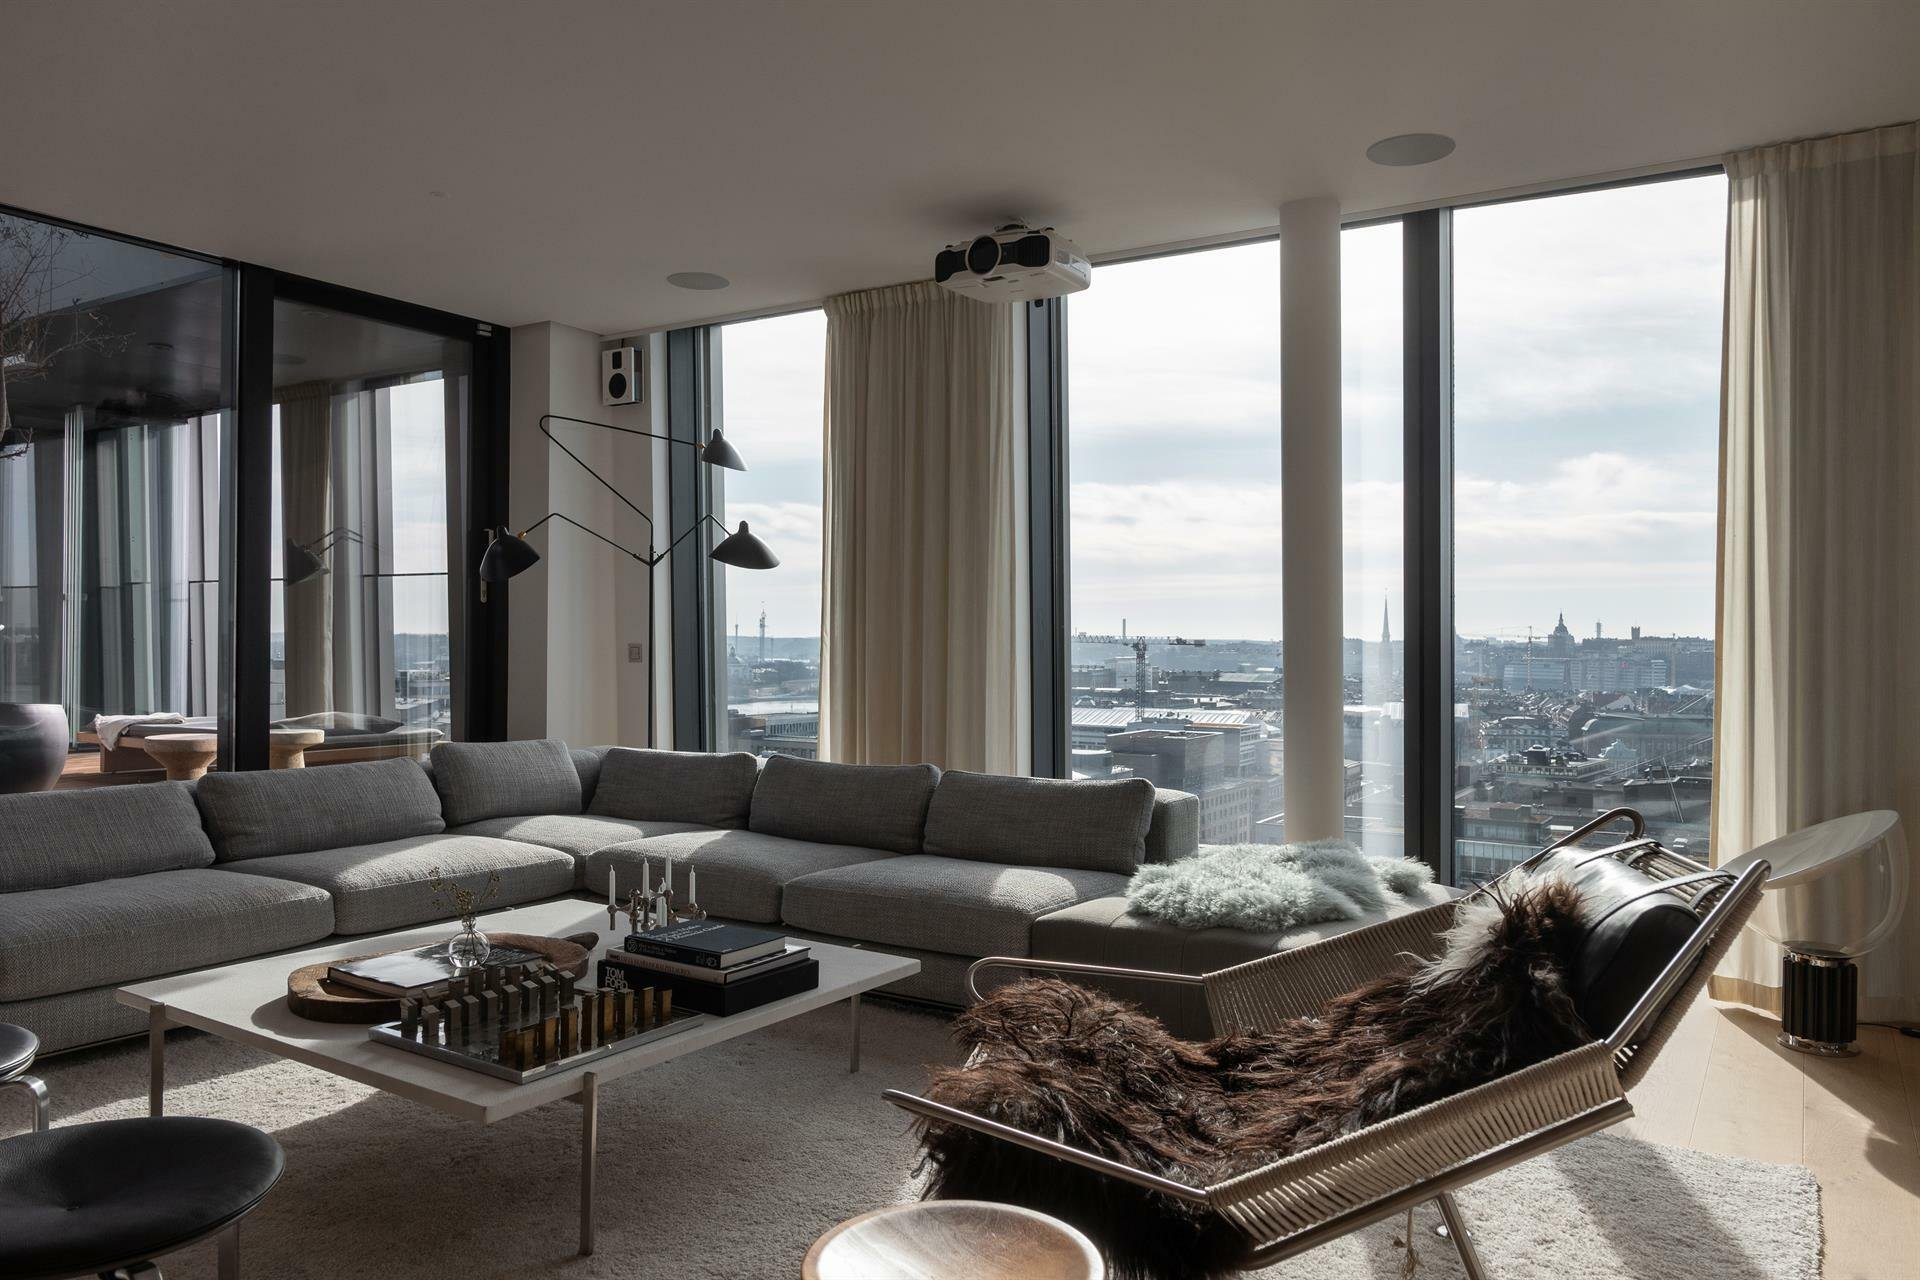 Apartment in Marieberg, Stockholm County, Sweden 1